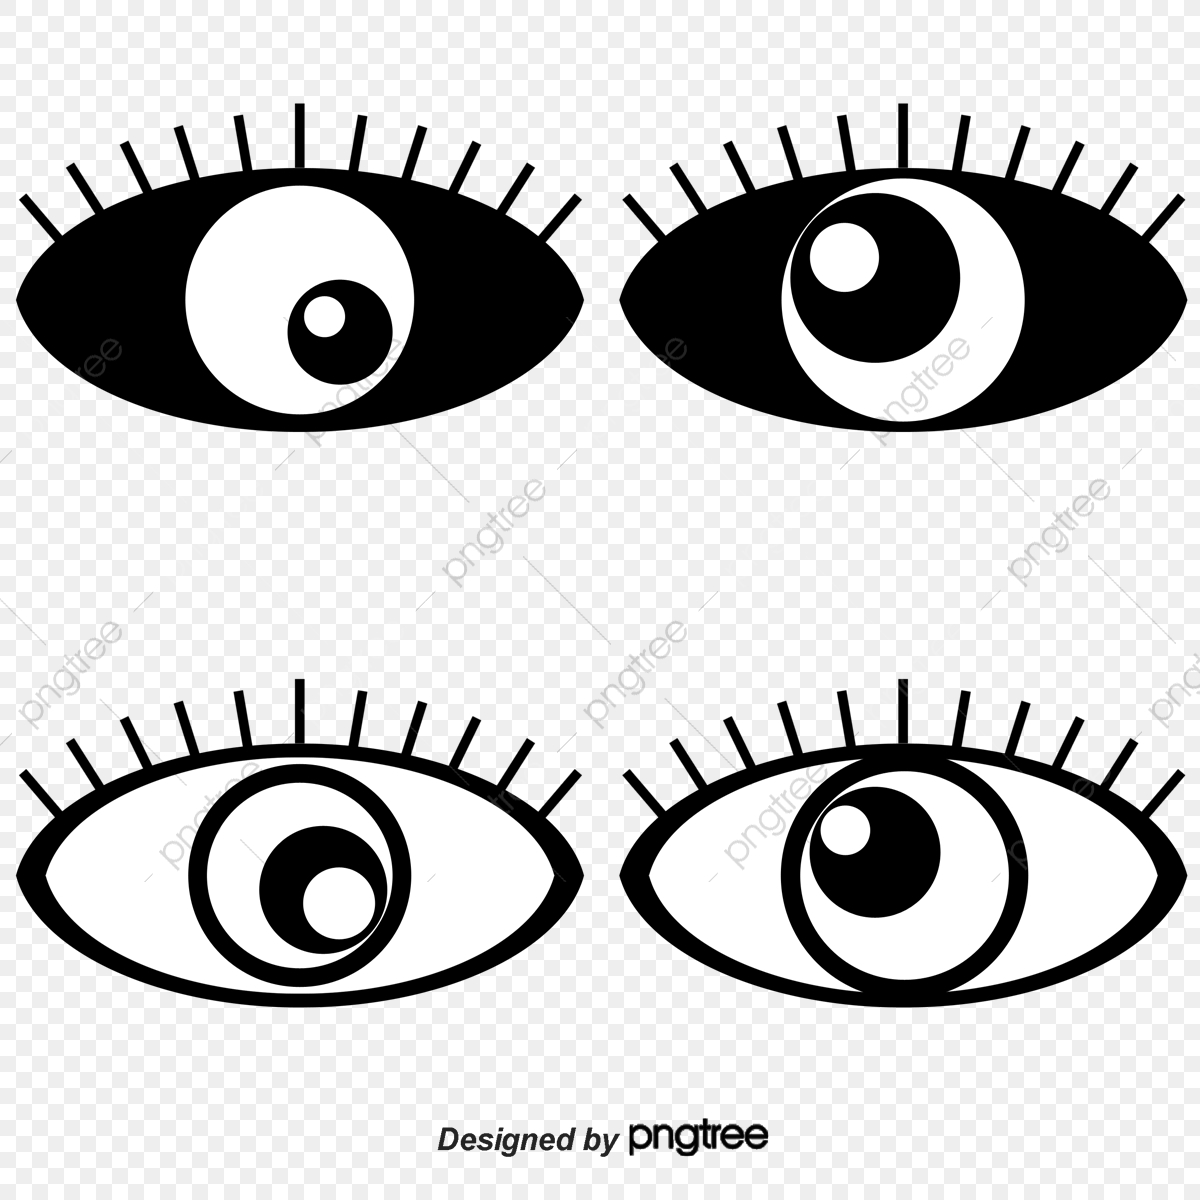 Free Eye Clip Art Black And White, Download Free Clip Art, Free Clip Art on  Clipart Library